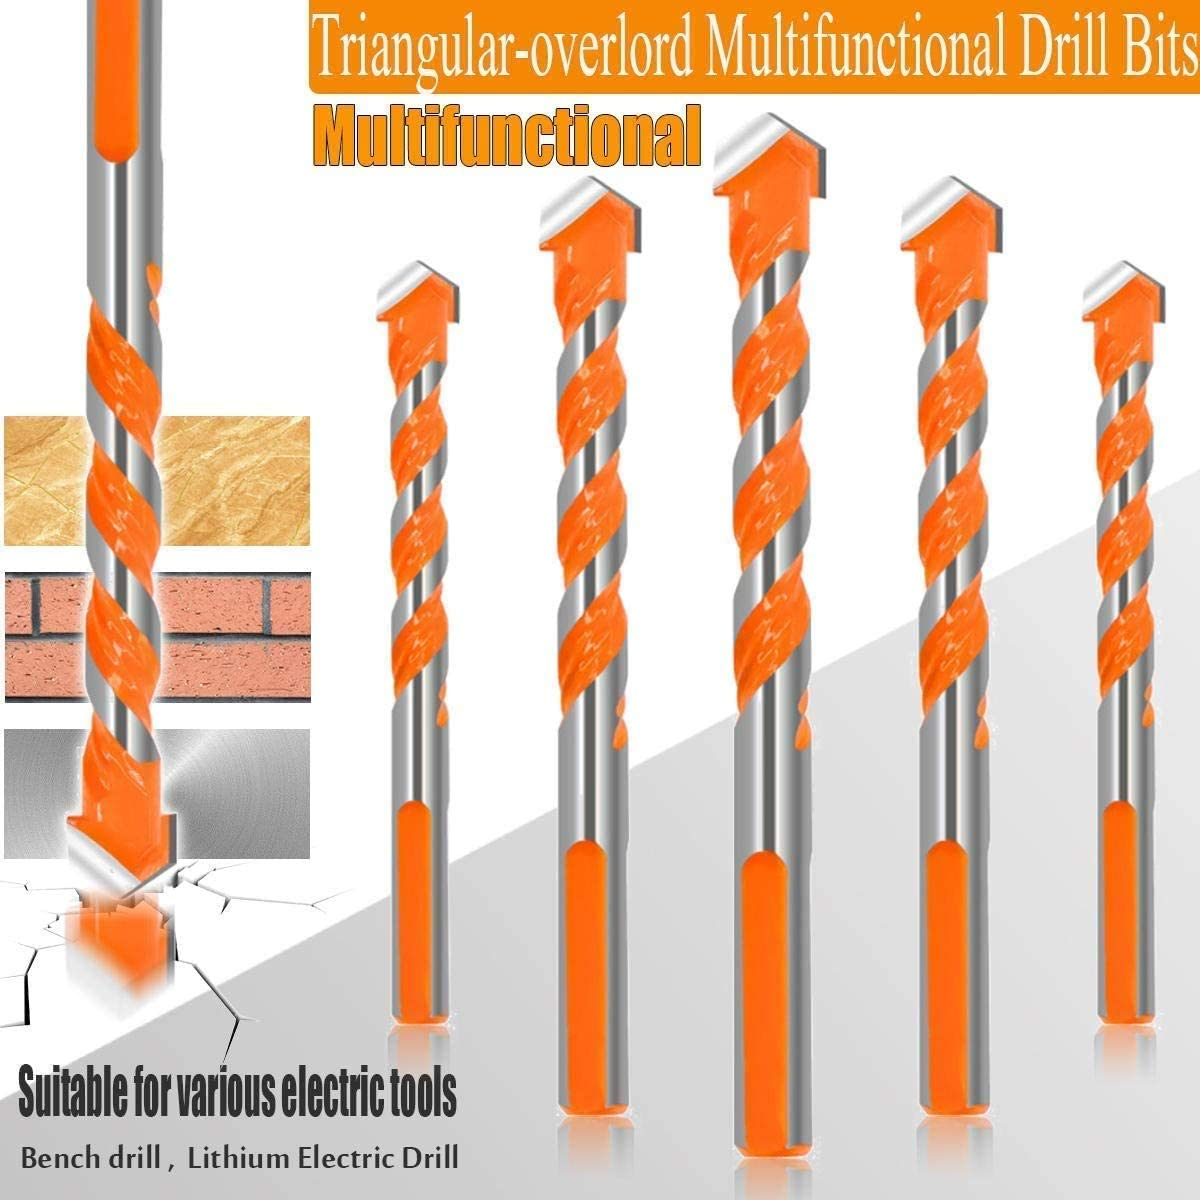 Brick Ultimate Punching Drill Bits Set with Tungsten Carbide Tip for Tile,Concrete 6, 8, 10, 12mm Triangular-Overlord Handle Multifunctional Drill Bits Plastic and Wood Glass 4 Pcs Set